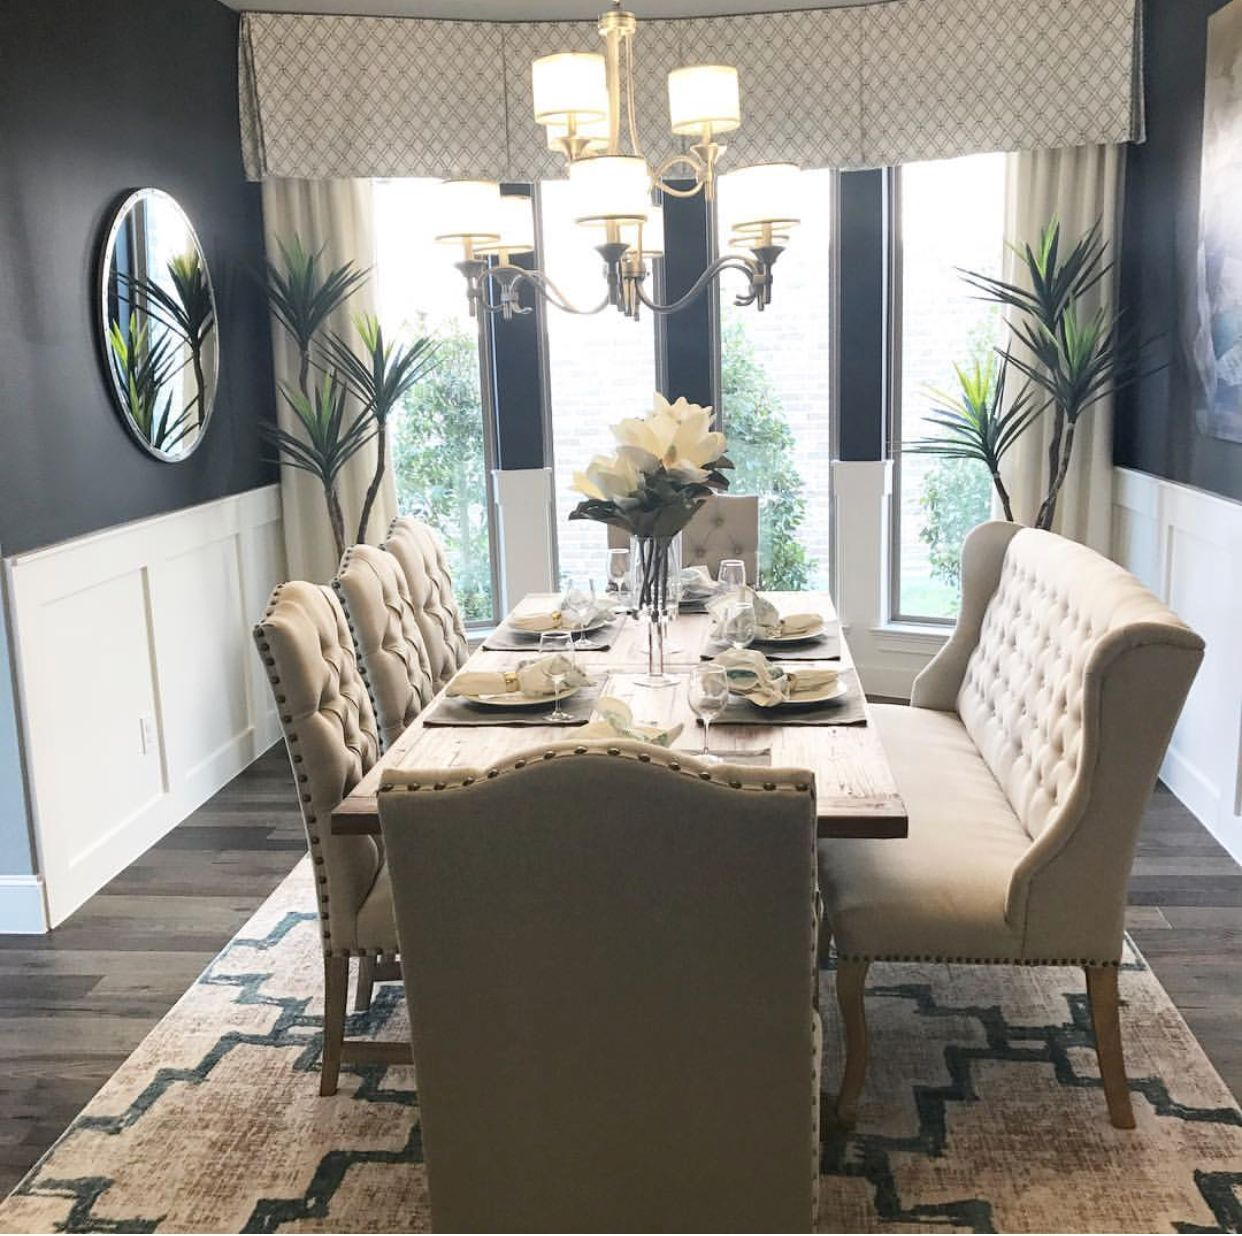 Elegant Tableware For Dining Rooms With Style: Dining Room Design, Elegant